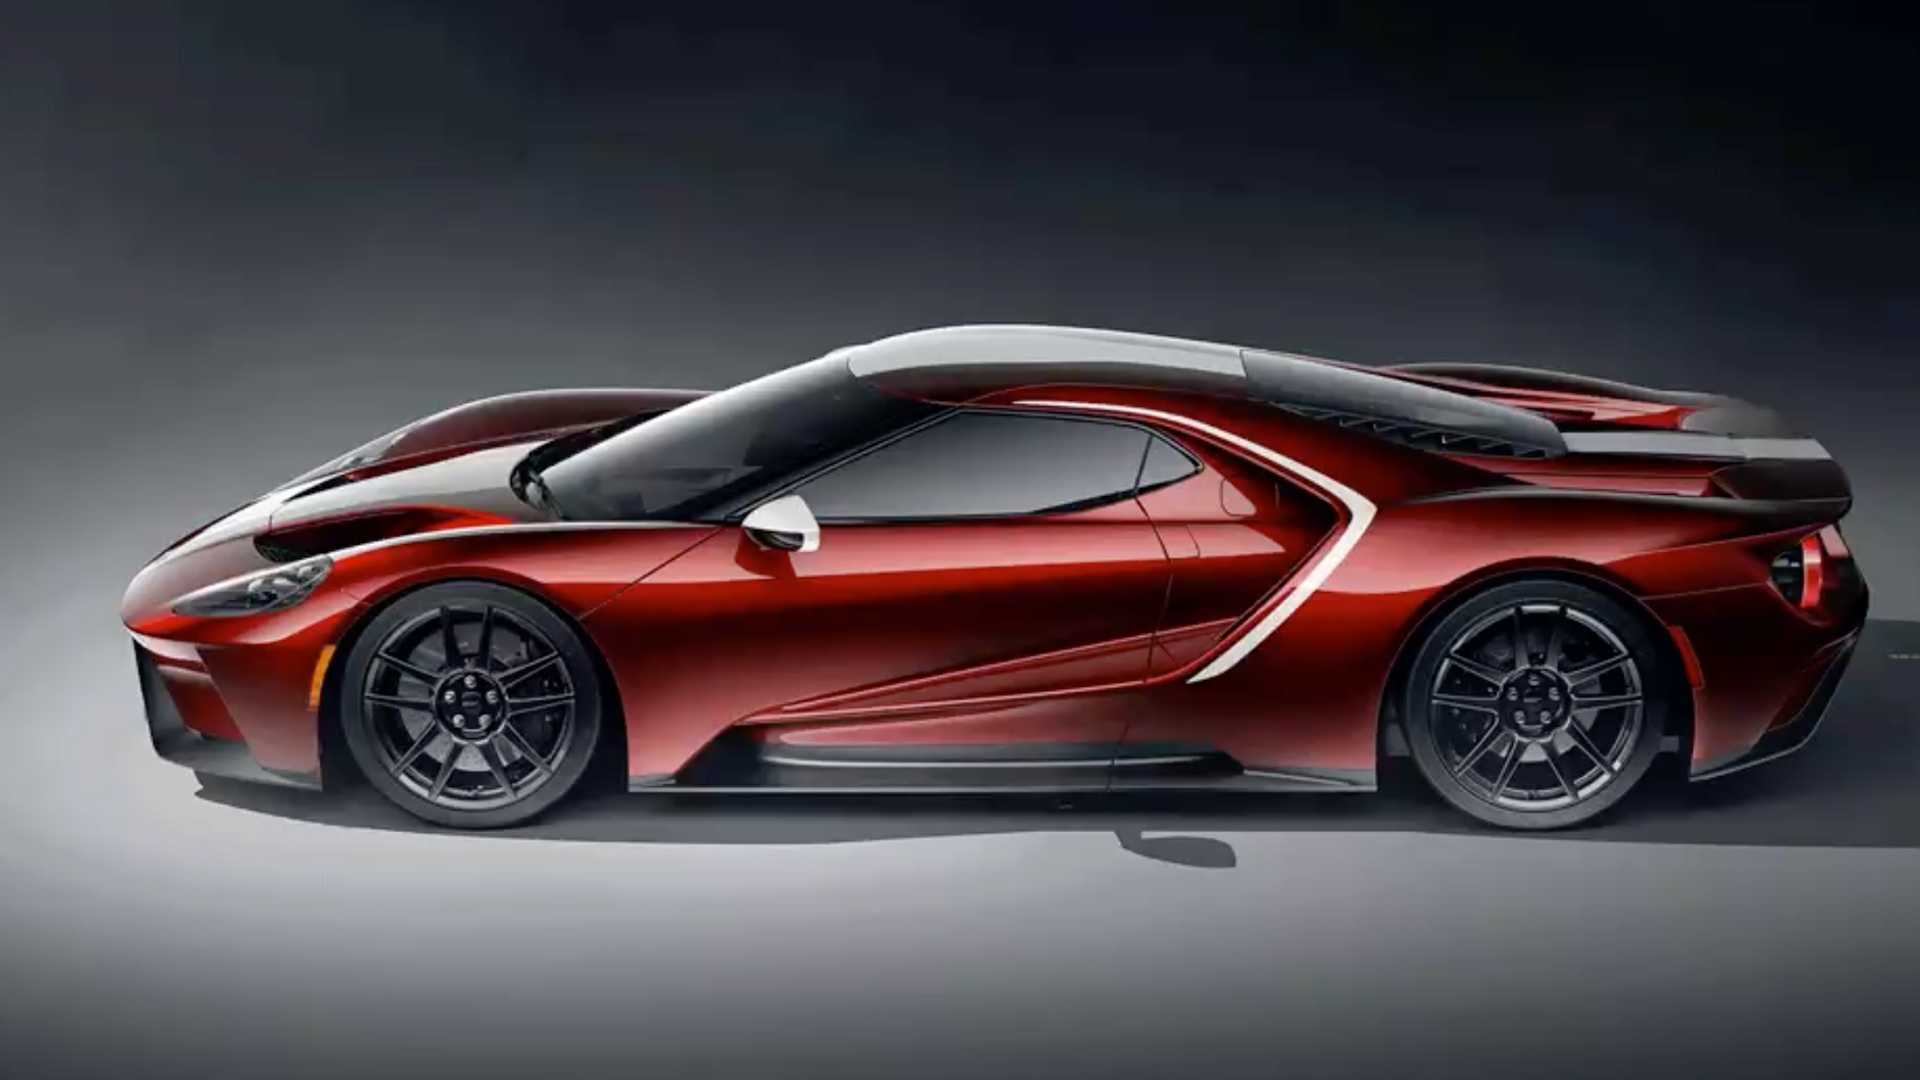 2021 Ford GT To Get All-New Graphics Package, Customizable Colors